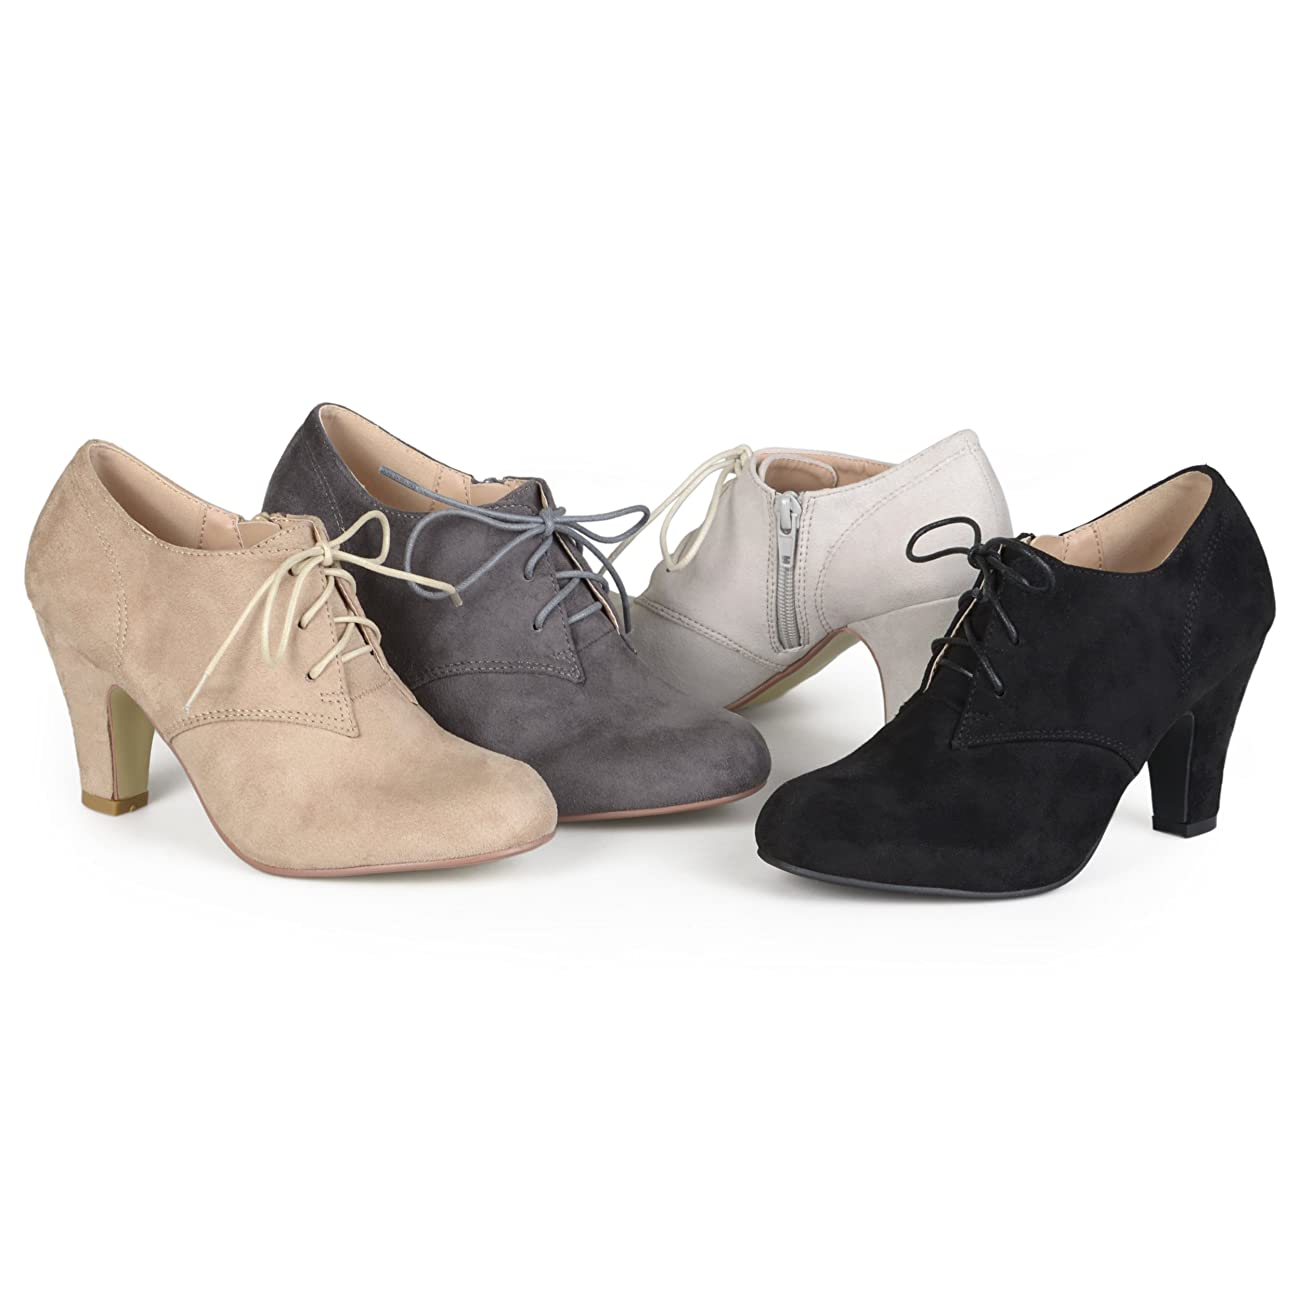 Brinley Co. Womens Vintage Round Toe High Heel Lace-up Faux Suede Booties 0